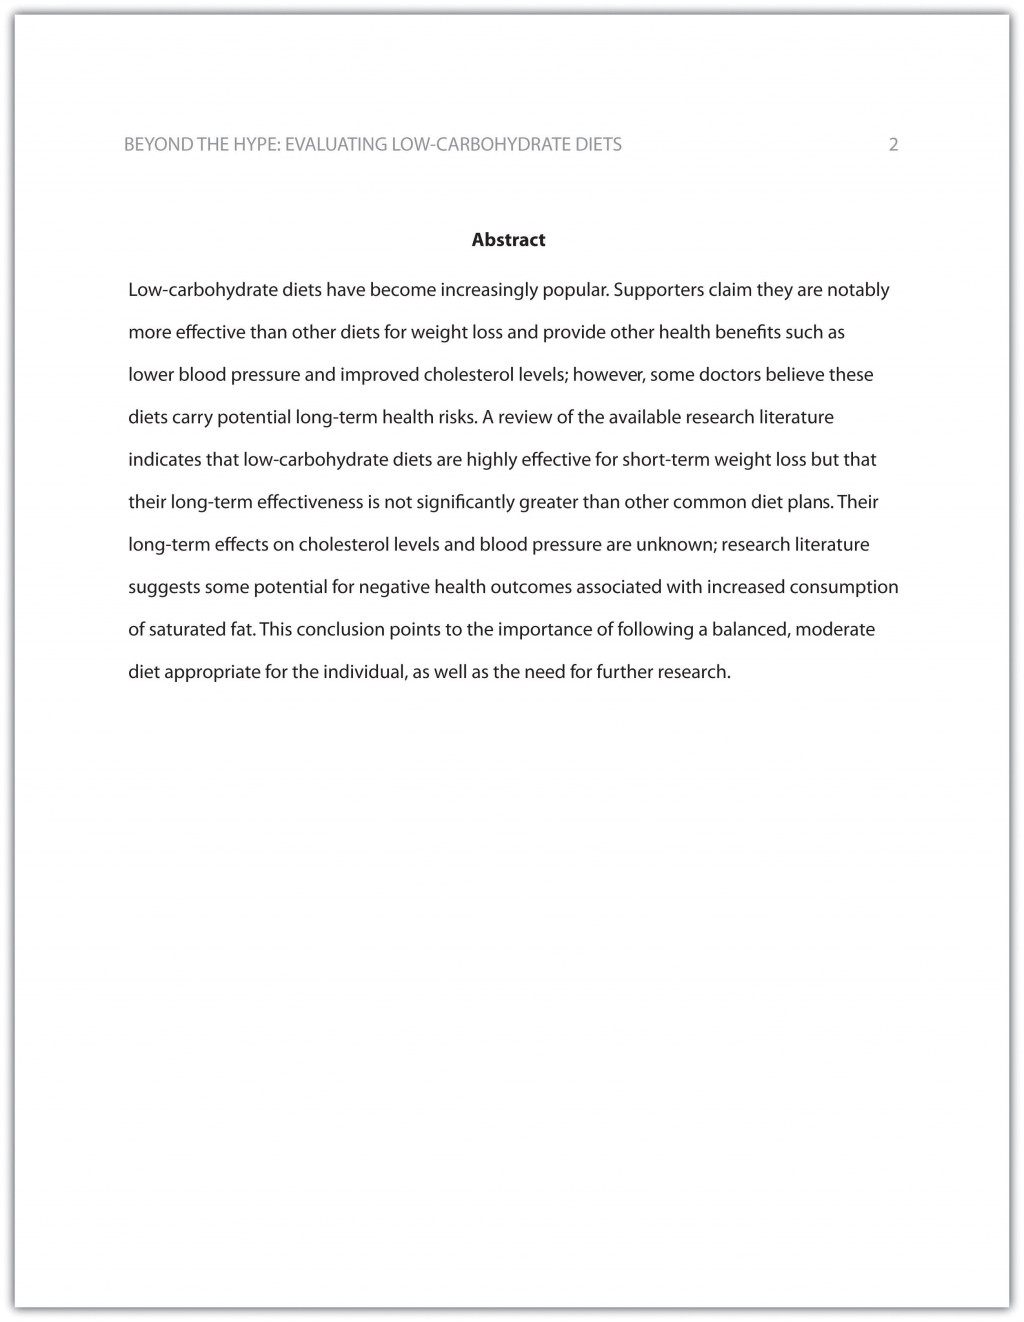 010 Research Paper Proper Order Of Sections In Apa Format Marvelous A Large